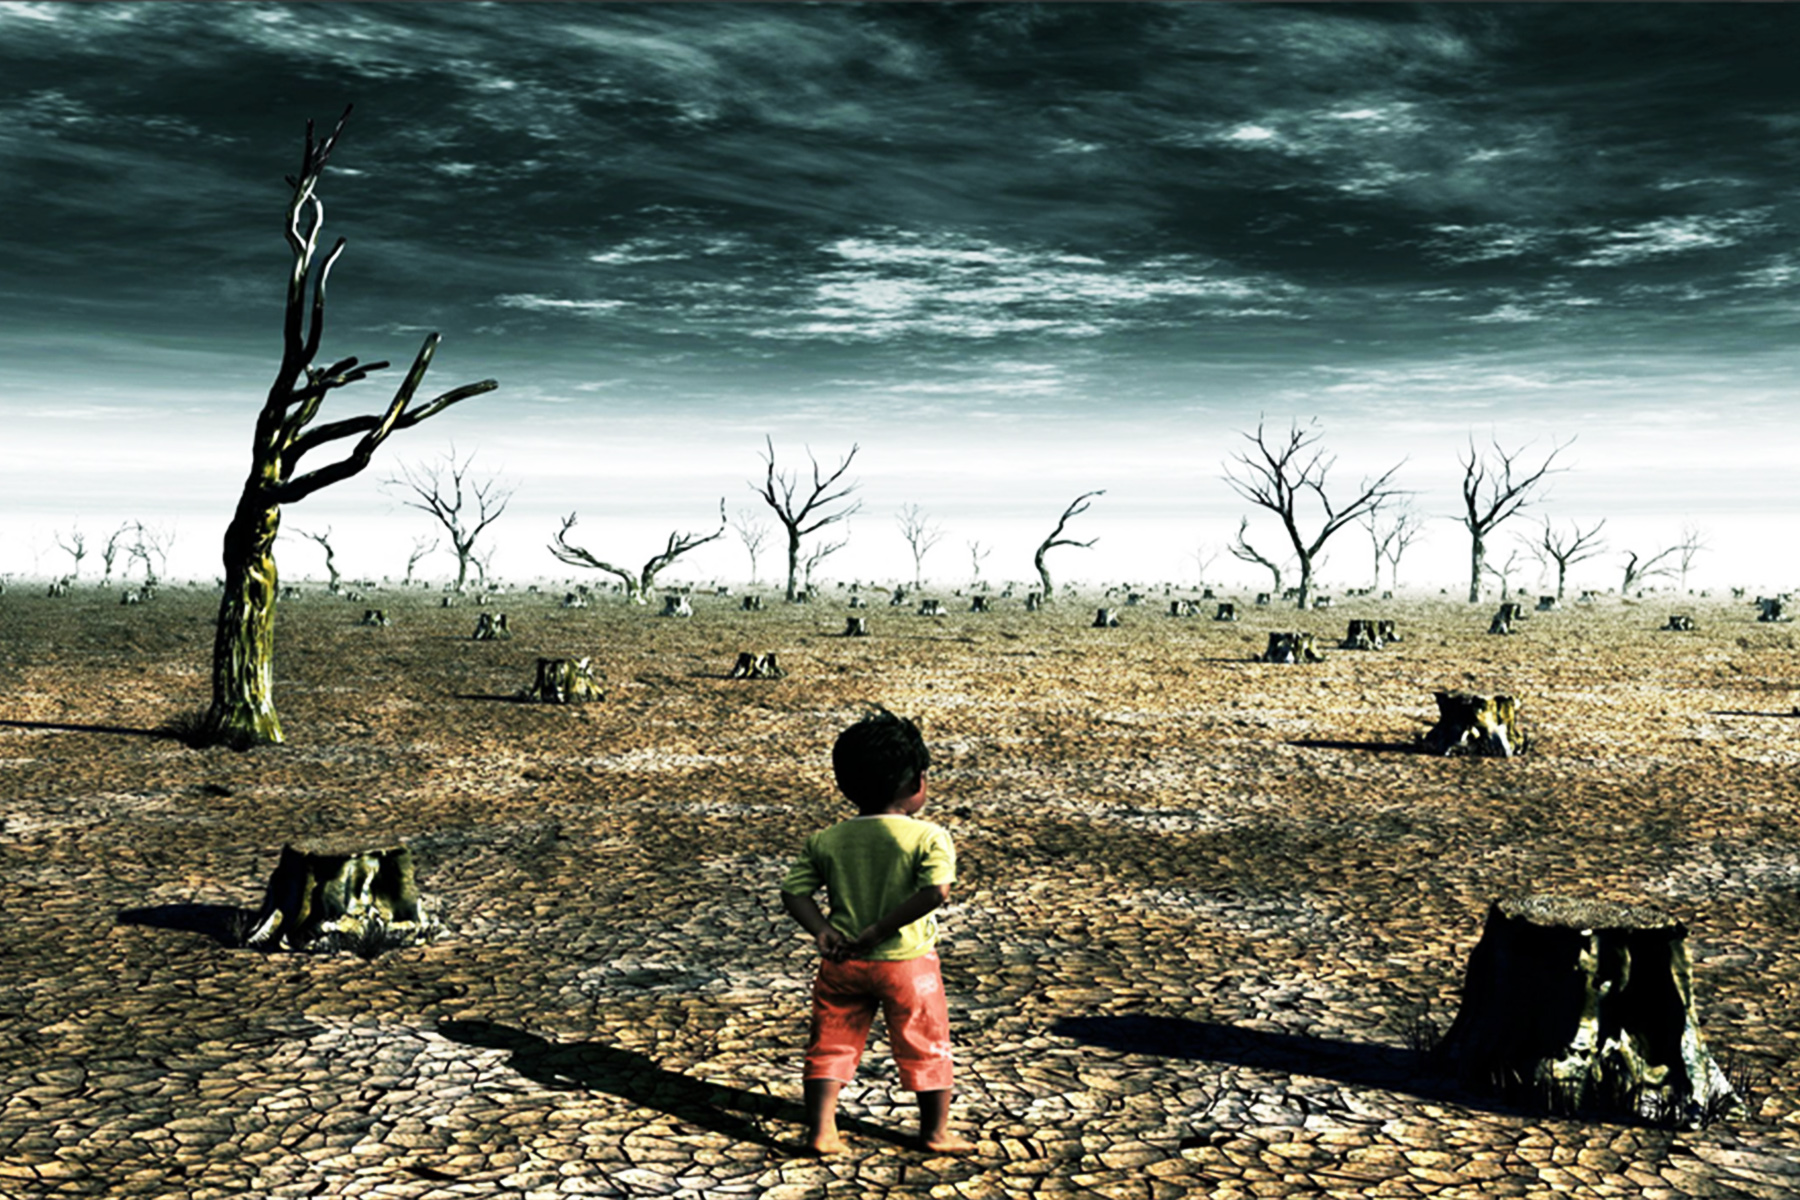 Global Warming And Climate Change End Of The Human Race